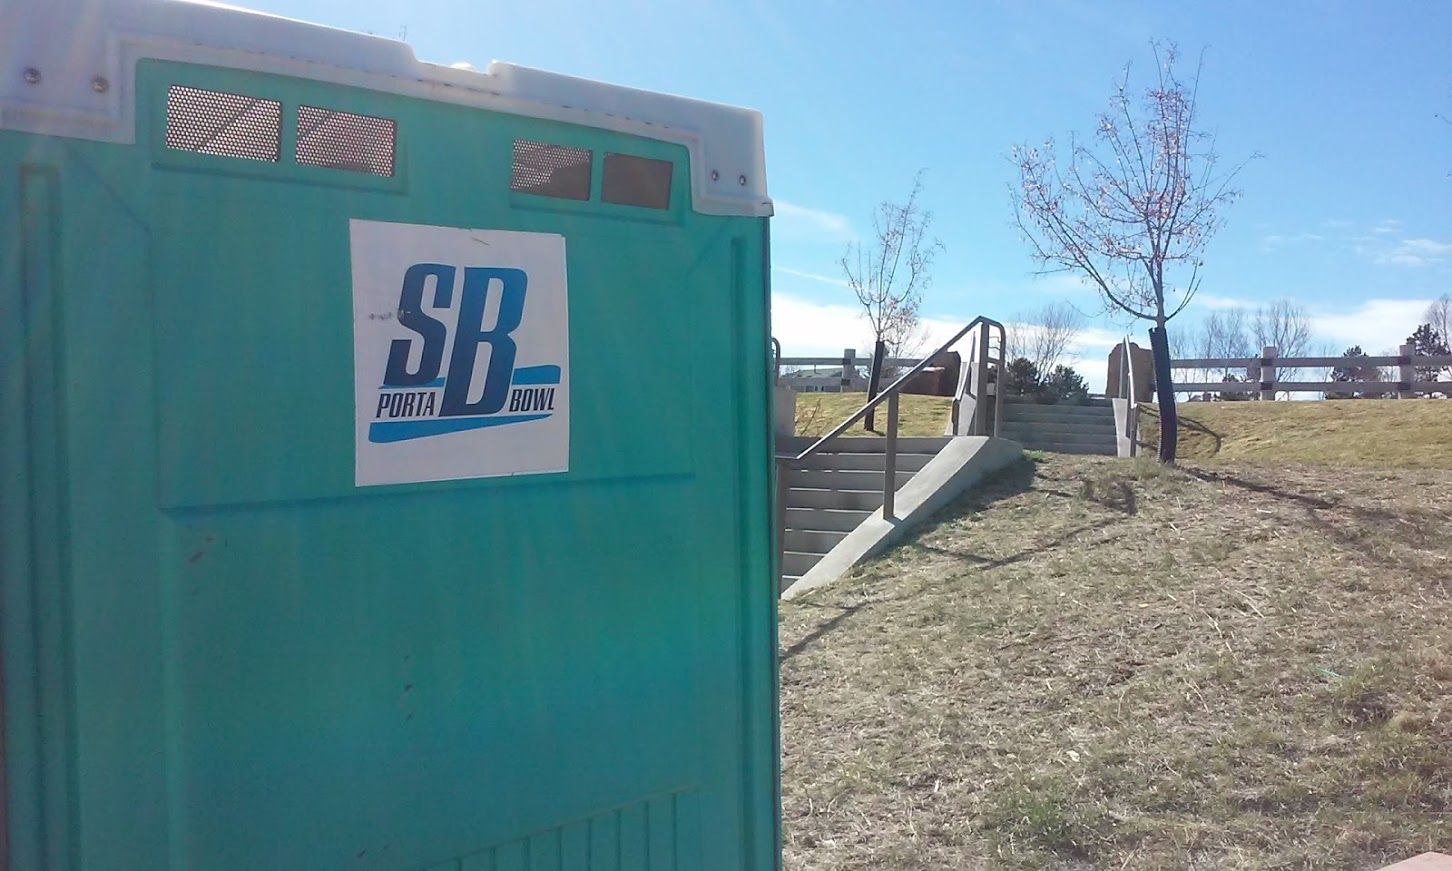 From one unit to many, S & B Porta Bowl has the inventory